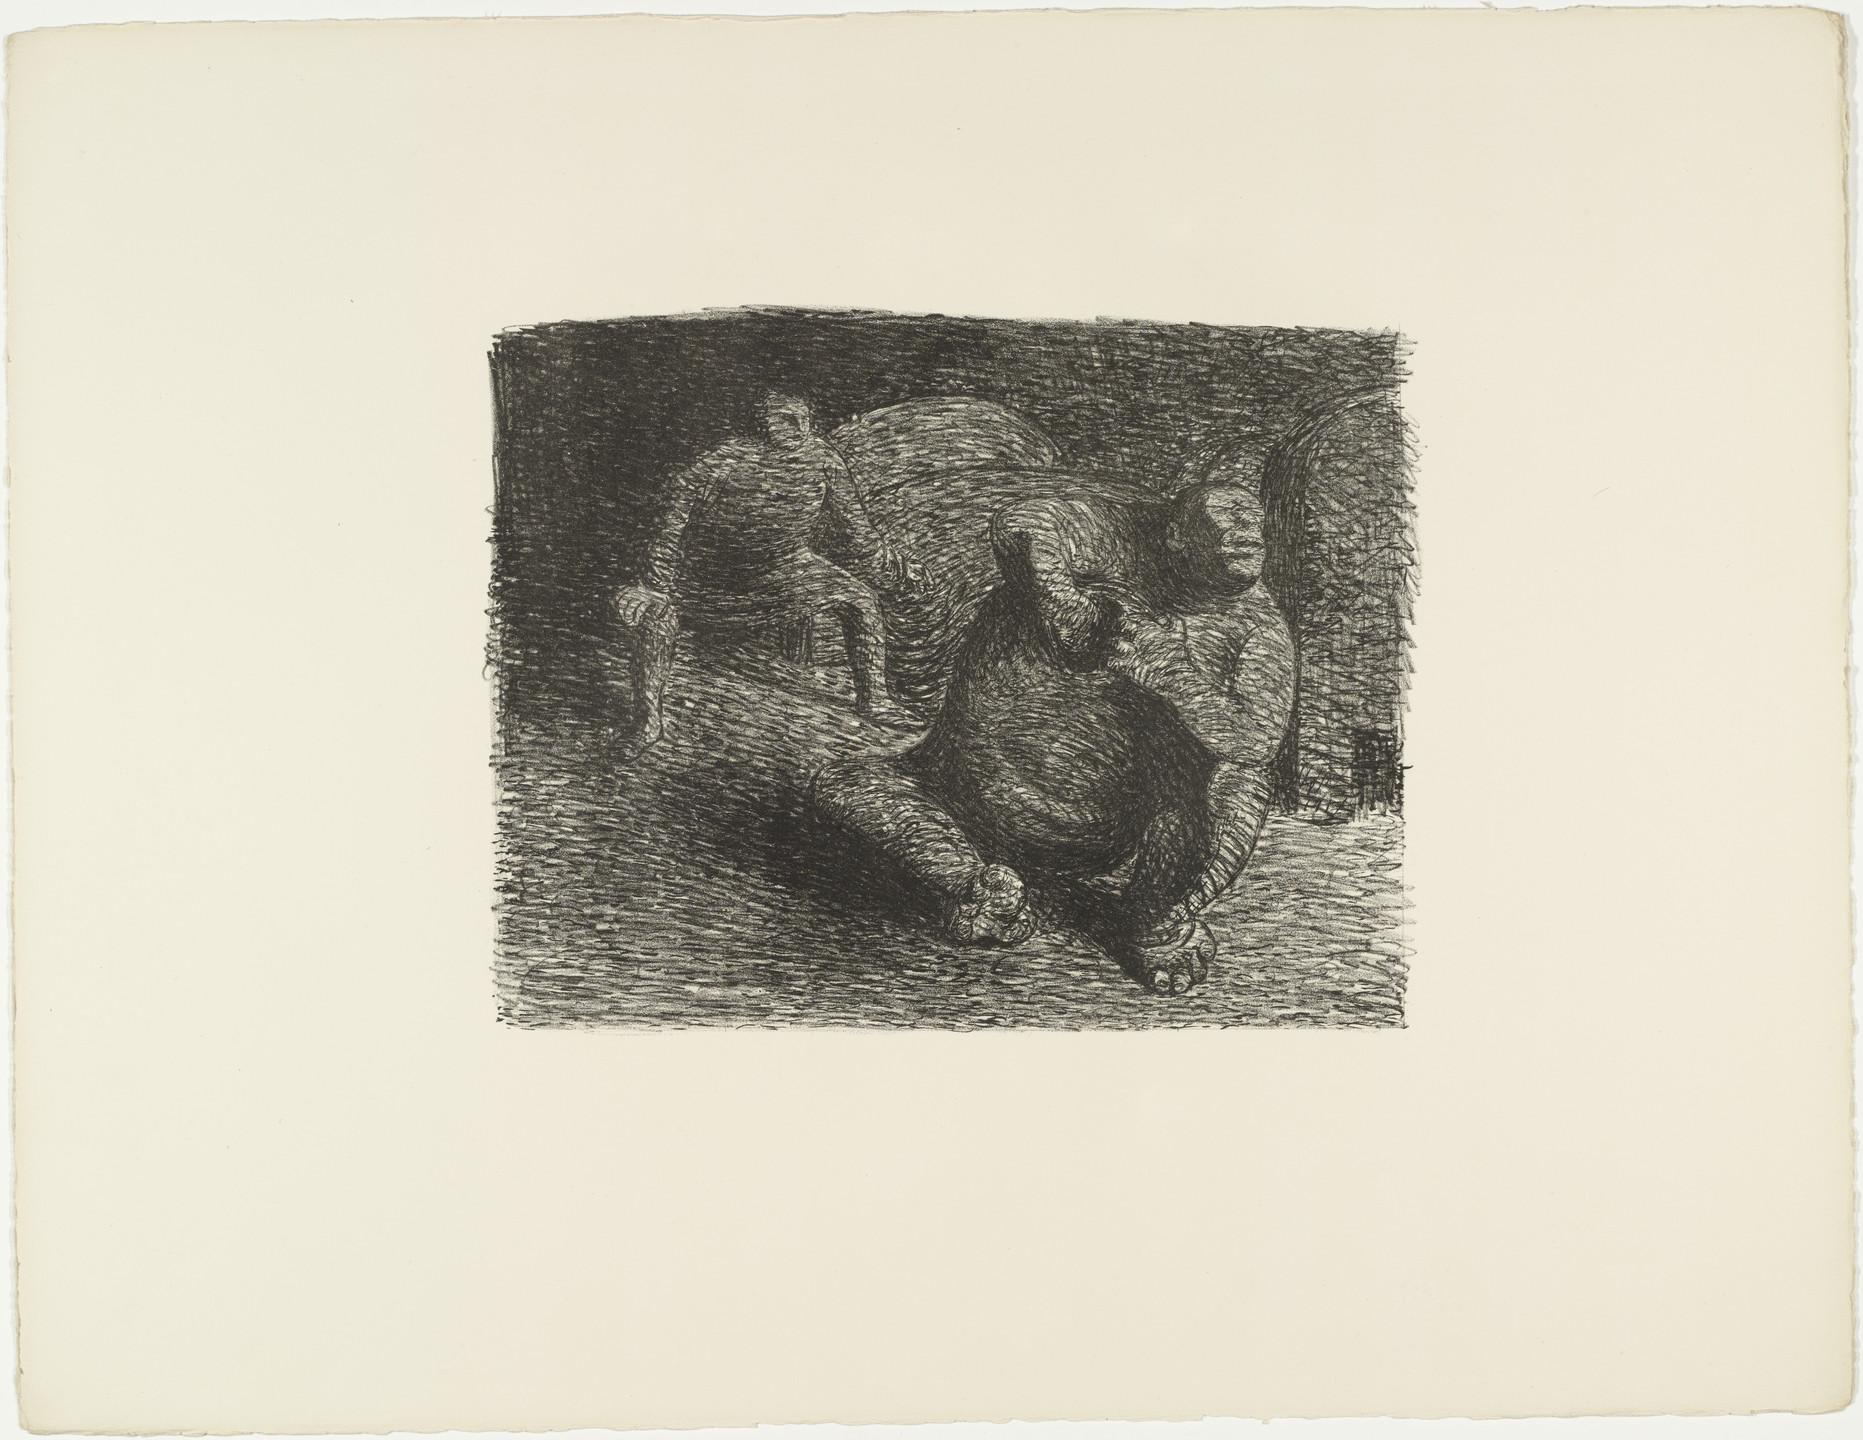 Ernst Barlach. Desperate Gobblin (Verzweifelter Alb) from The Dead Day (Der tote Tag). (1910-11, published 1912)